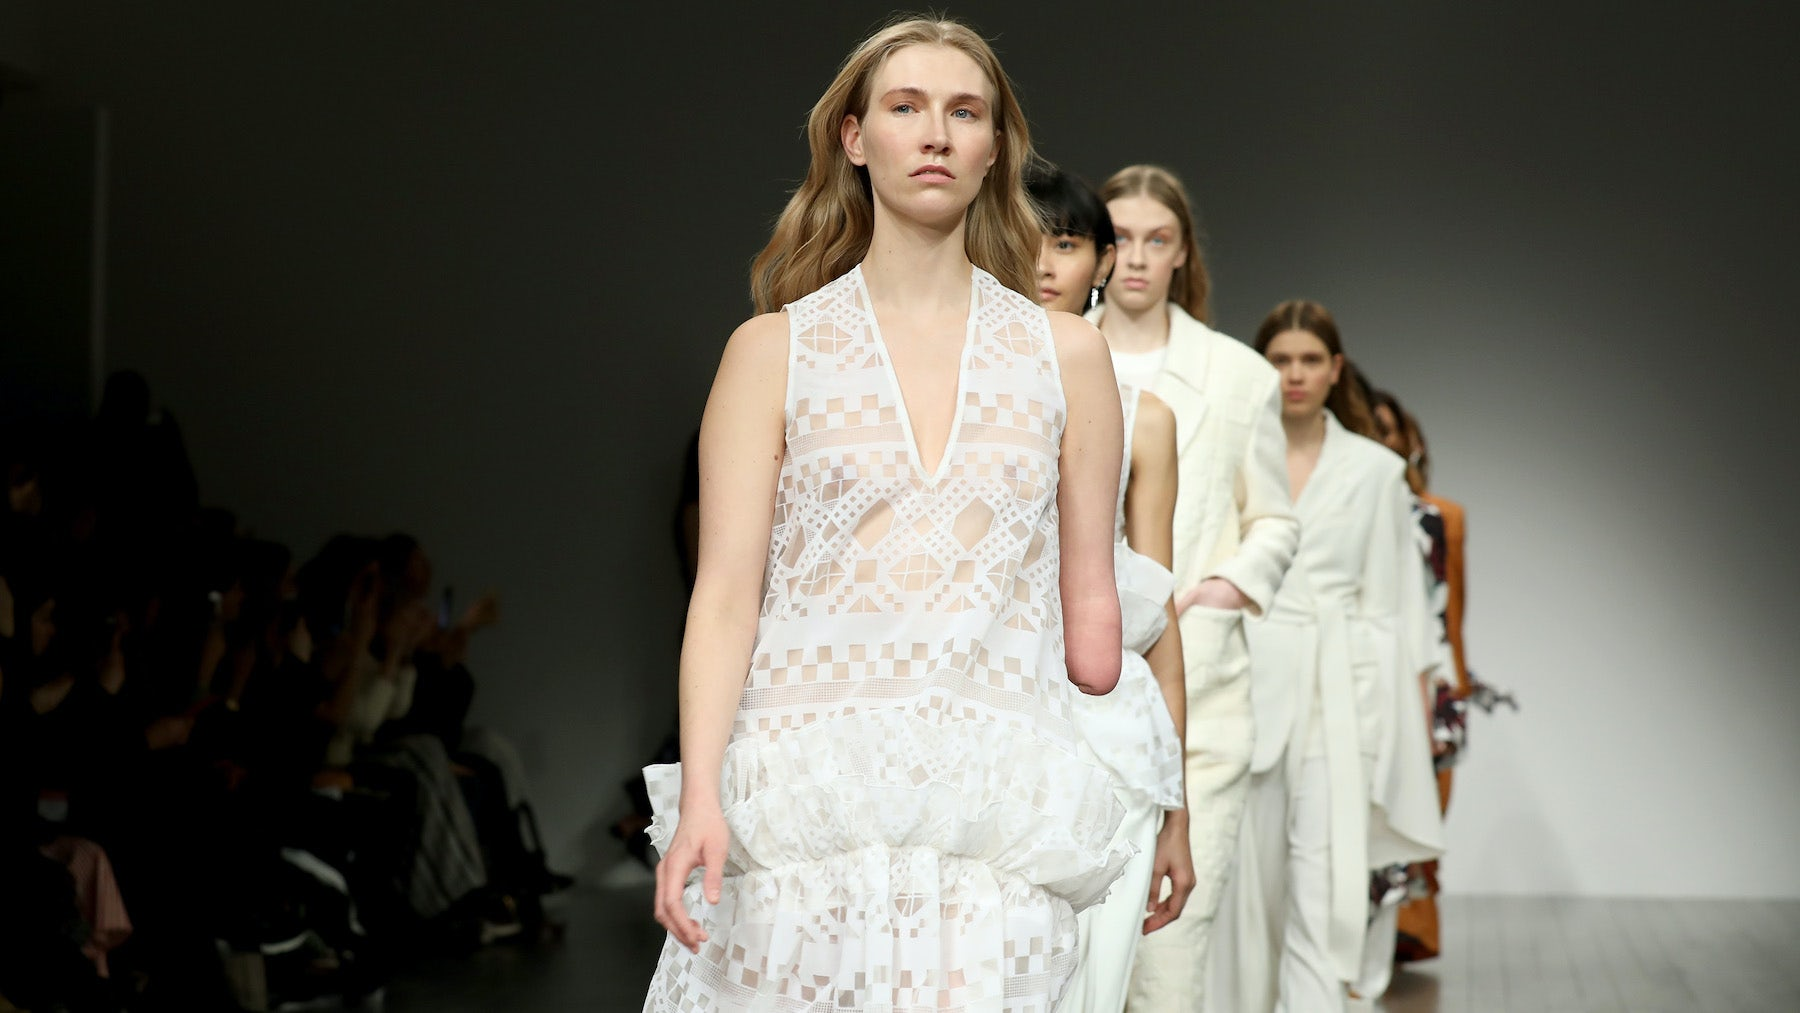 Kelly Knox was one of the models to walk the runway at the Teatum Jones' Spring 2018 show during London Fashion Week   Source: Getty